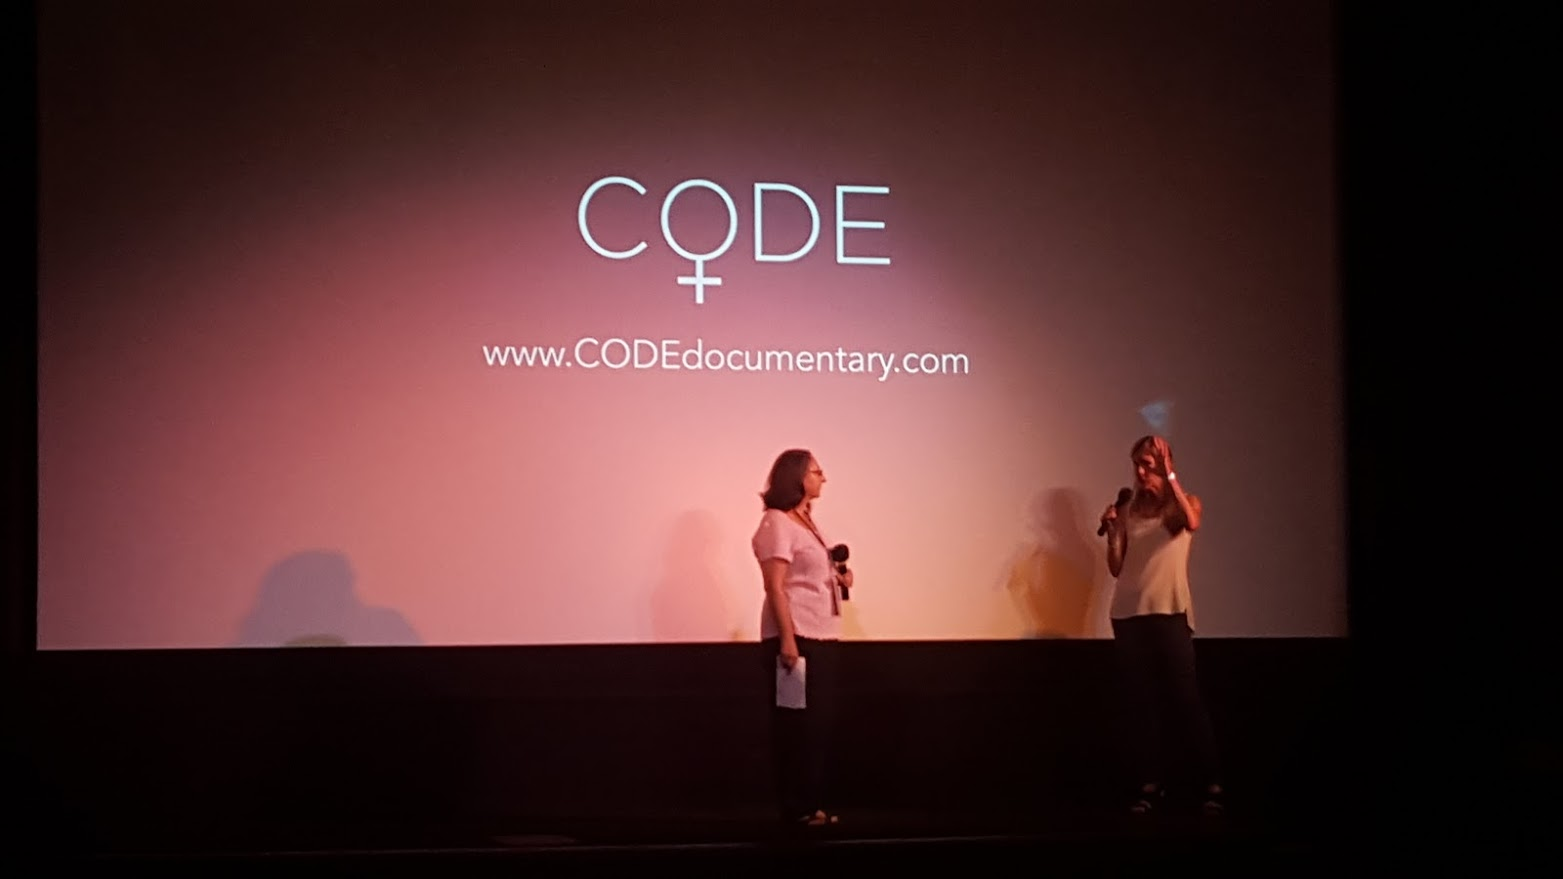 Director Robin Hauser Reynolds leads discussion with Mill Valley Film Festival's Education Coordinator of her new documentary,  CODE:Debugging the Gender Gap in Technology  at a special screening generously arranged to build community around computer science and raise visibility for  TLCoding Lab , Physic's Academy at San Rafael High School and the Advanced Digital Media Class at Miller Creek Middle School in October 2015.